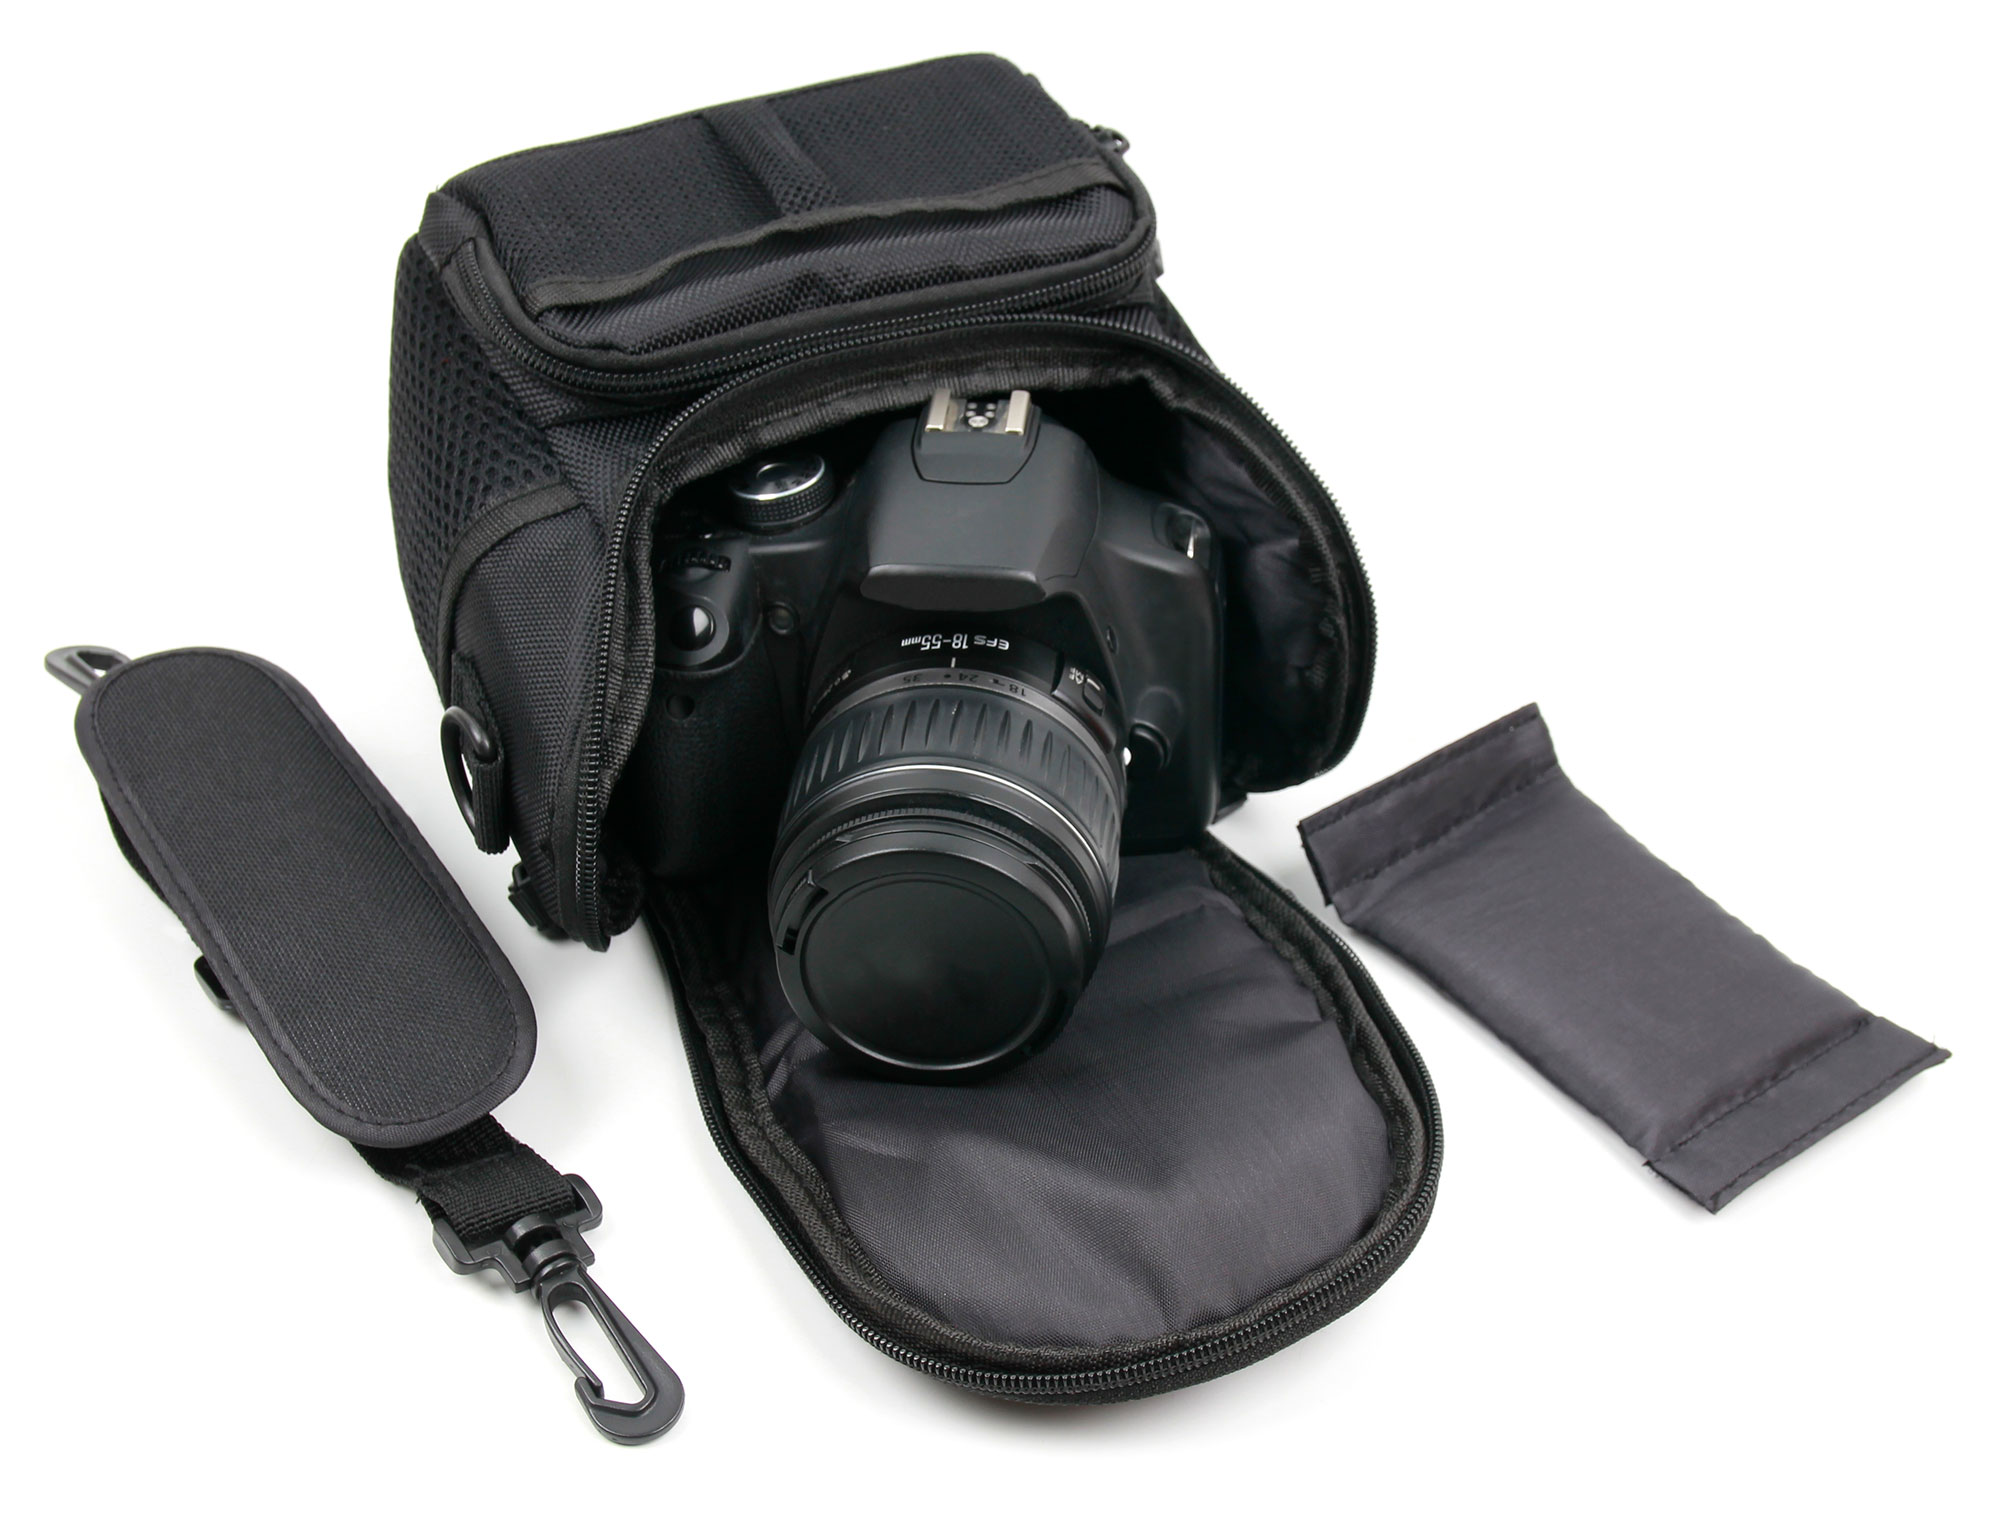 DURAGADGET Shock-Absorbing /& Water-Resistant Carry Bag in Black /& Orange Compatible with Canon EOS M100